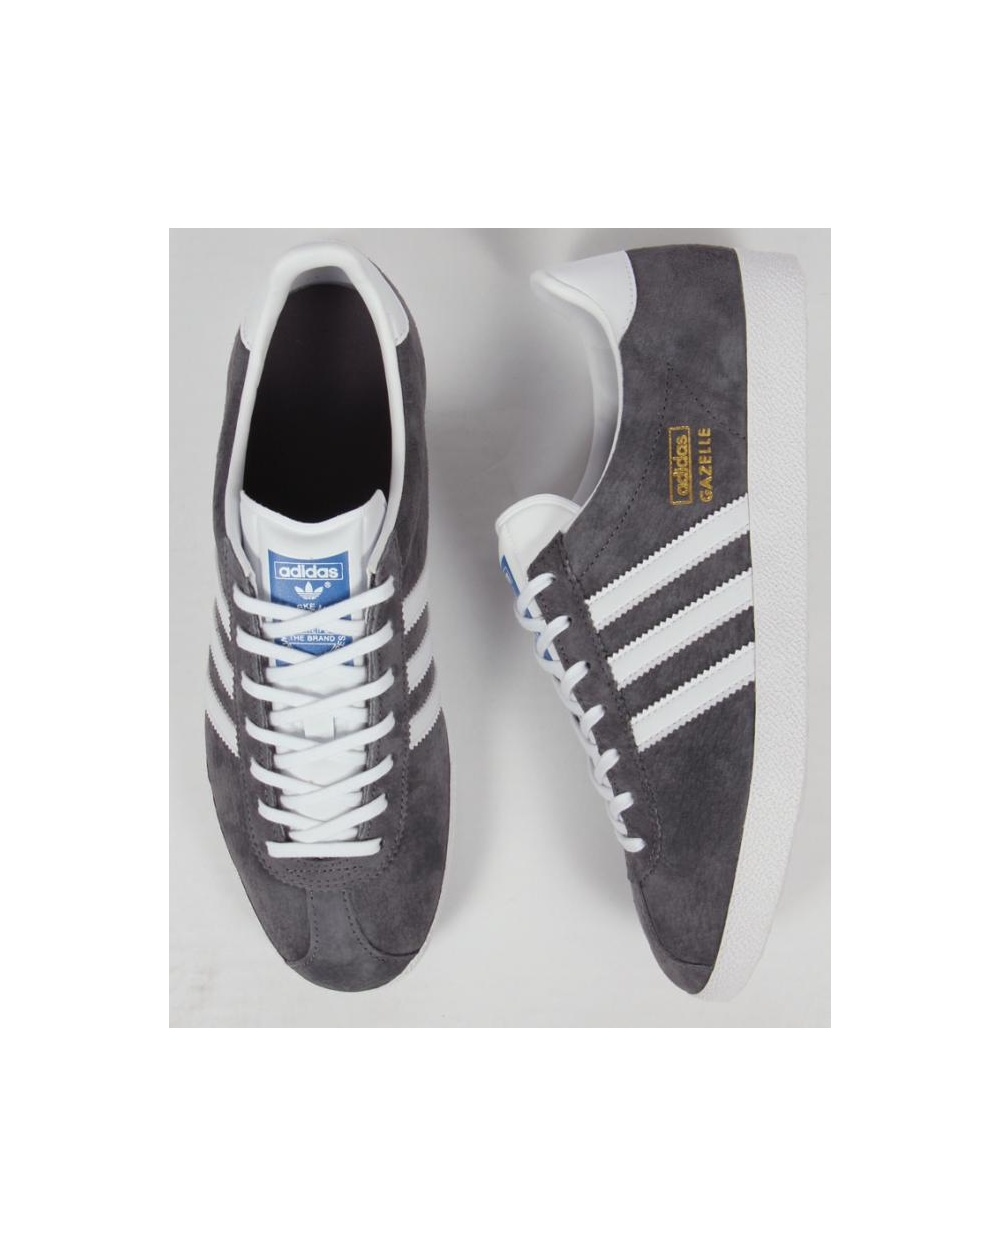 Adidas Gazelle Og Grey Black